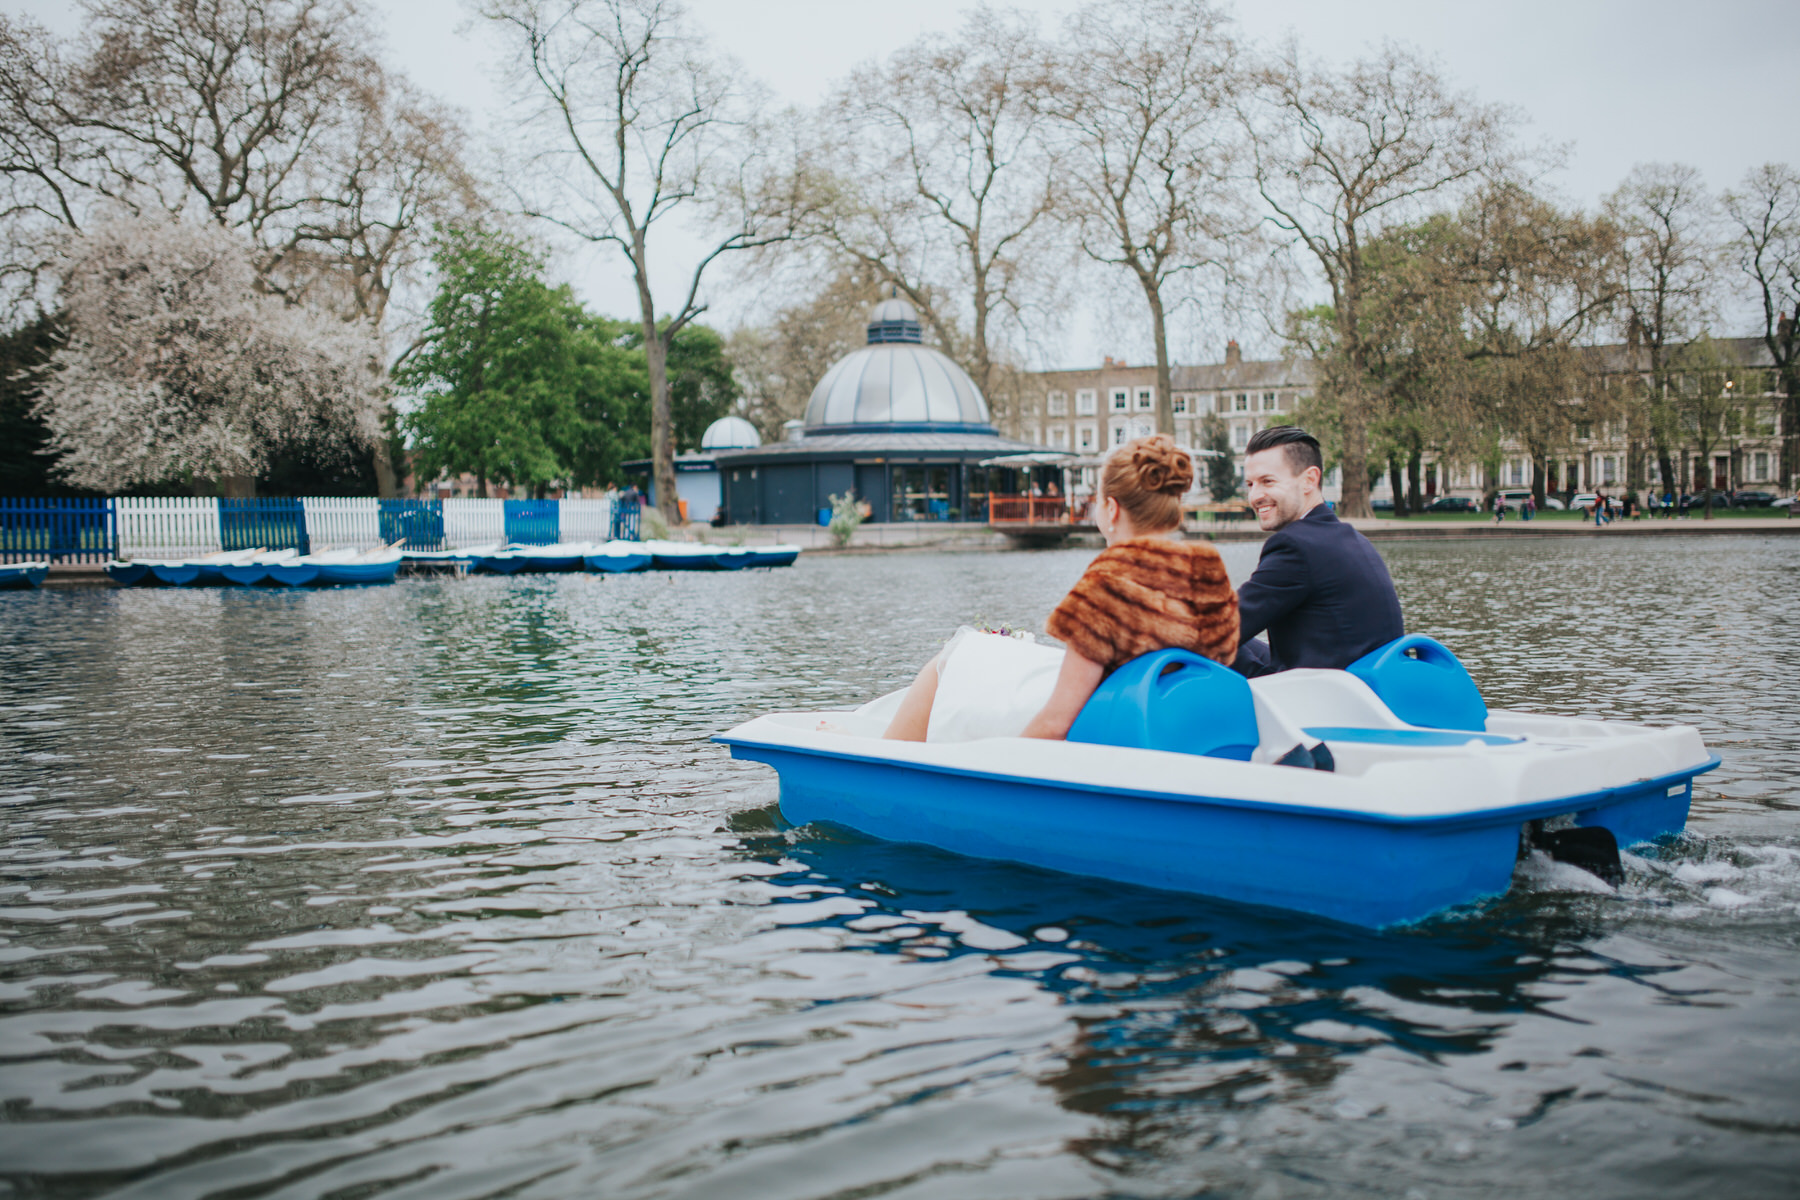 203-Victoria-park-alternative-wedding-pedalo.jpg